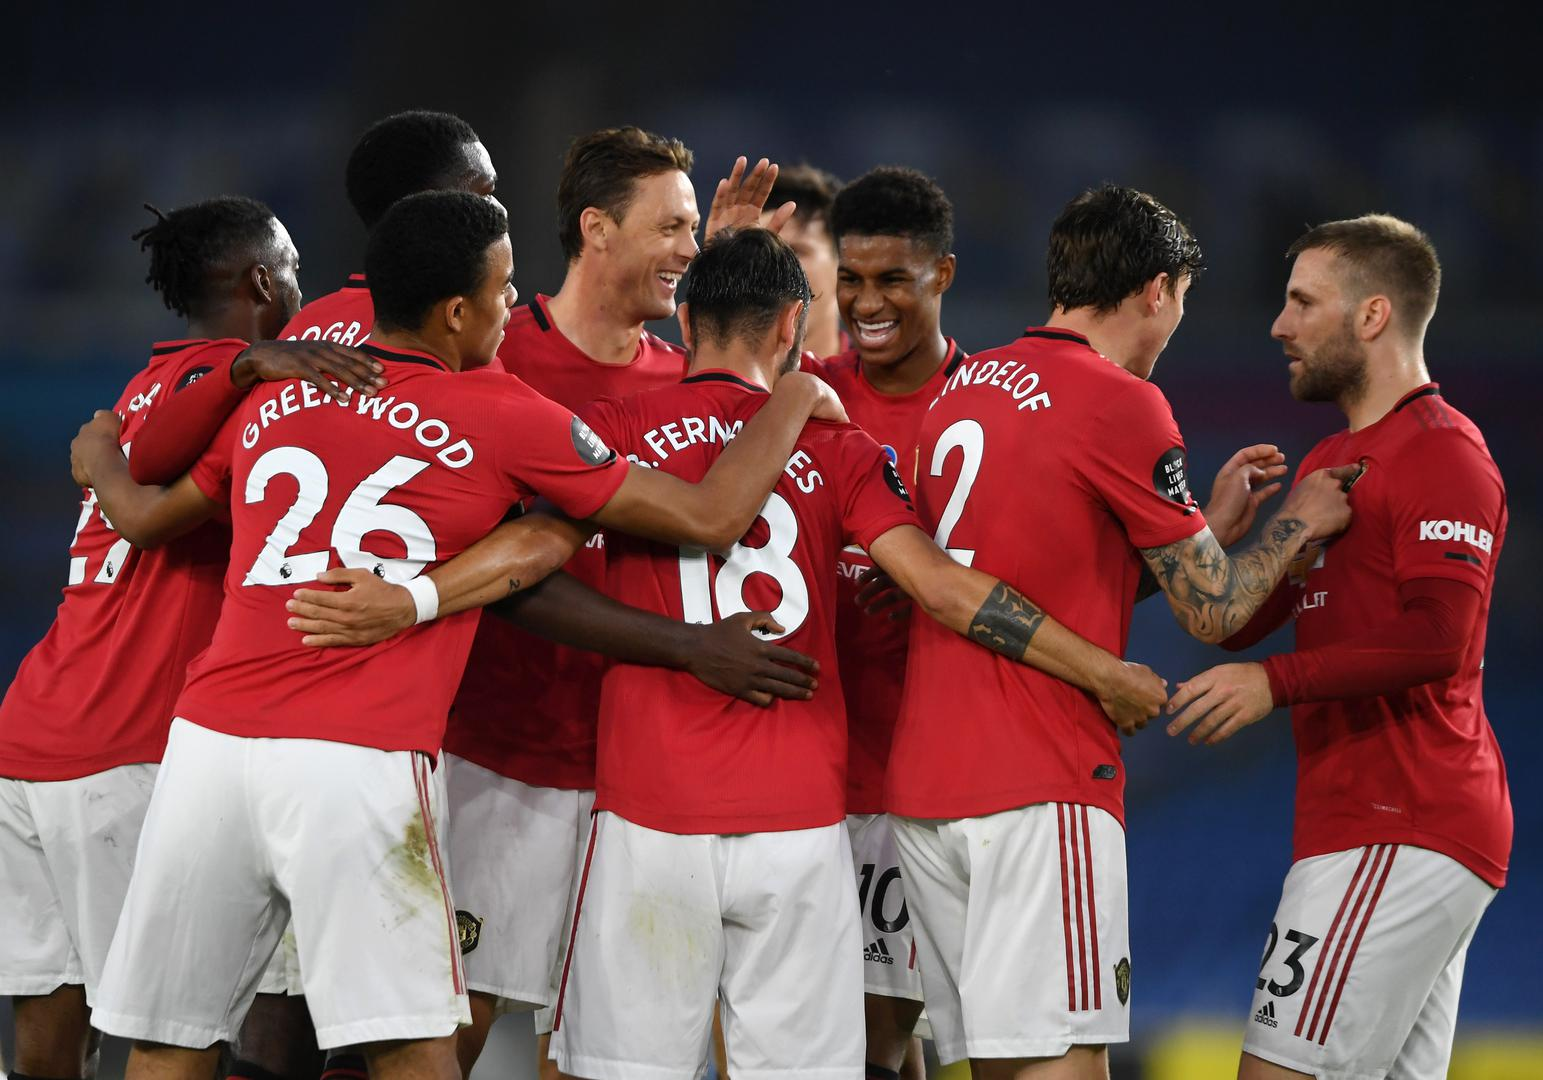 Manchester United players including Nemanja Matic, Bruno Fernandes and Marcus Rashford celebrate a goal.